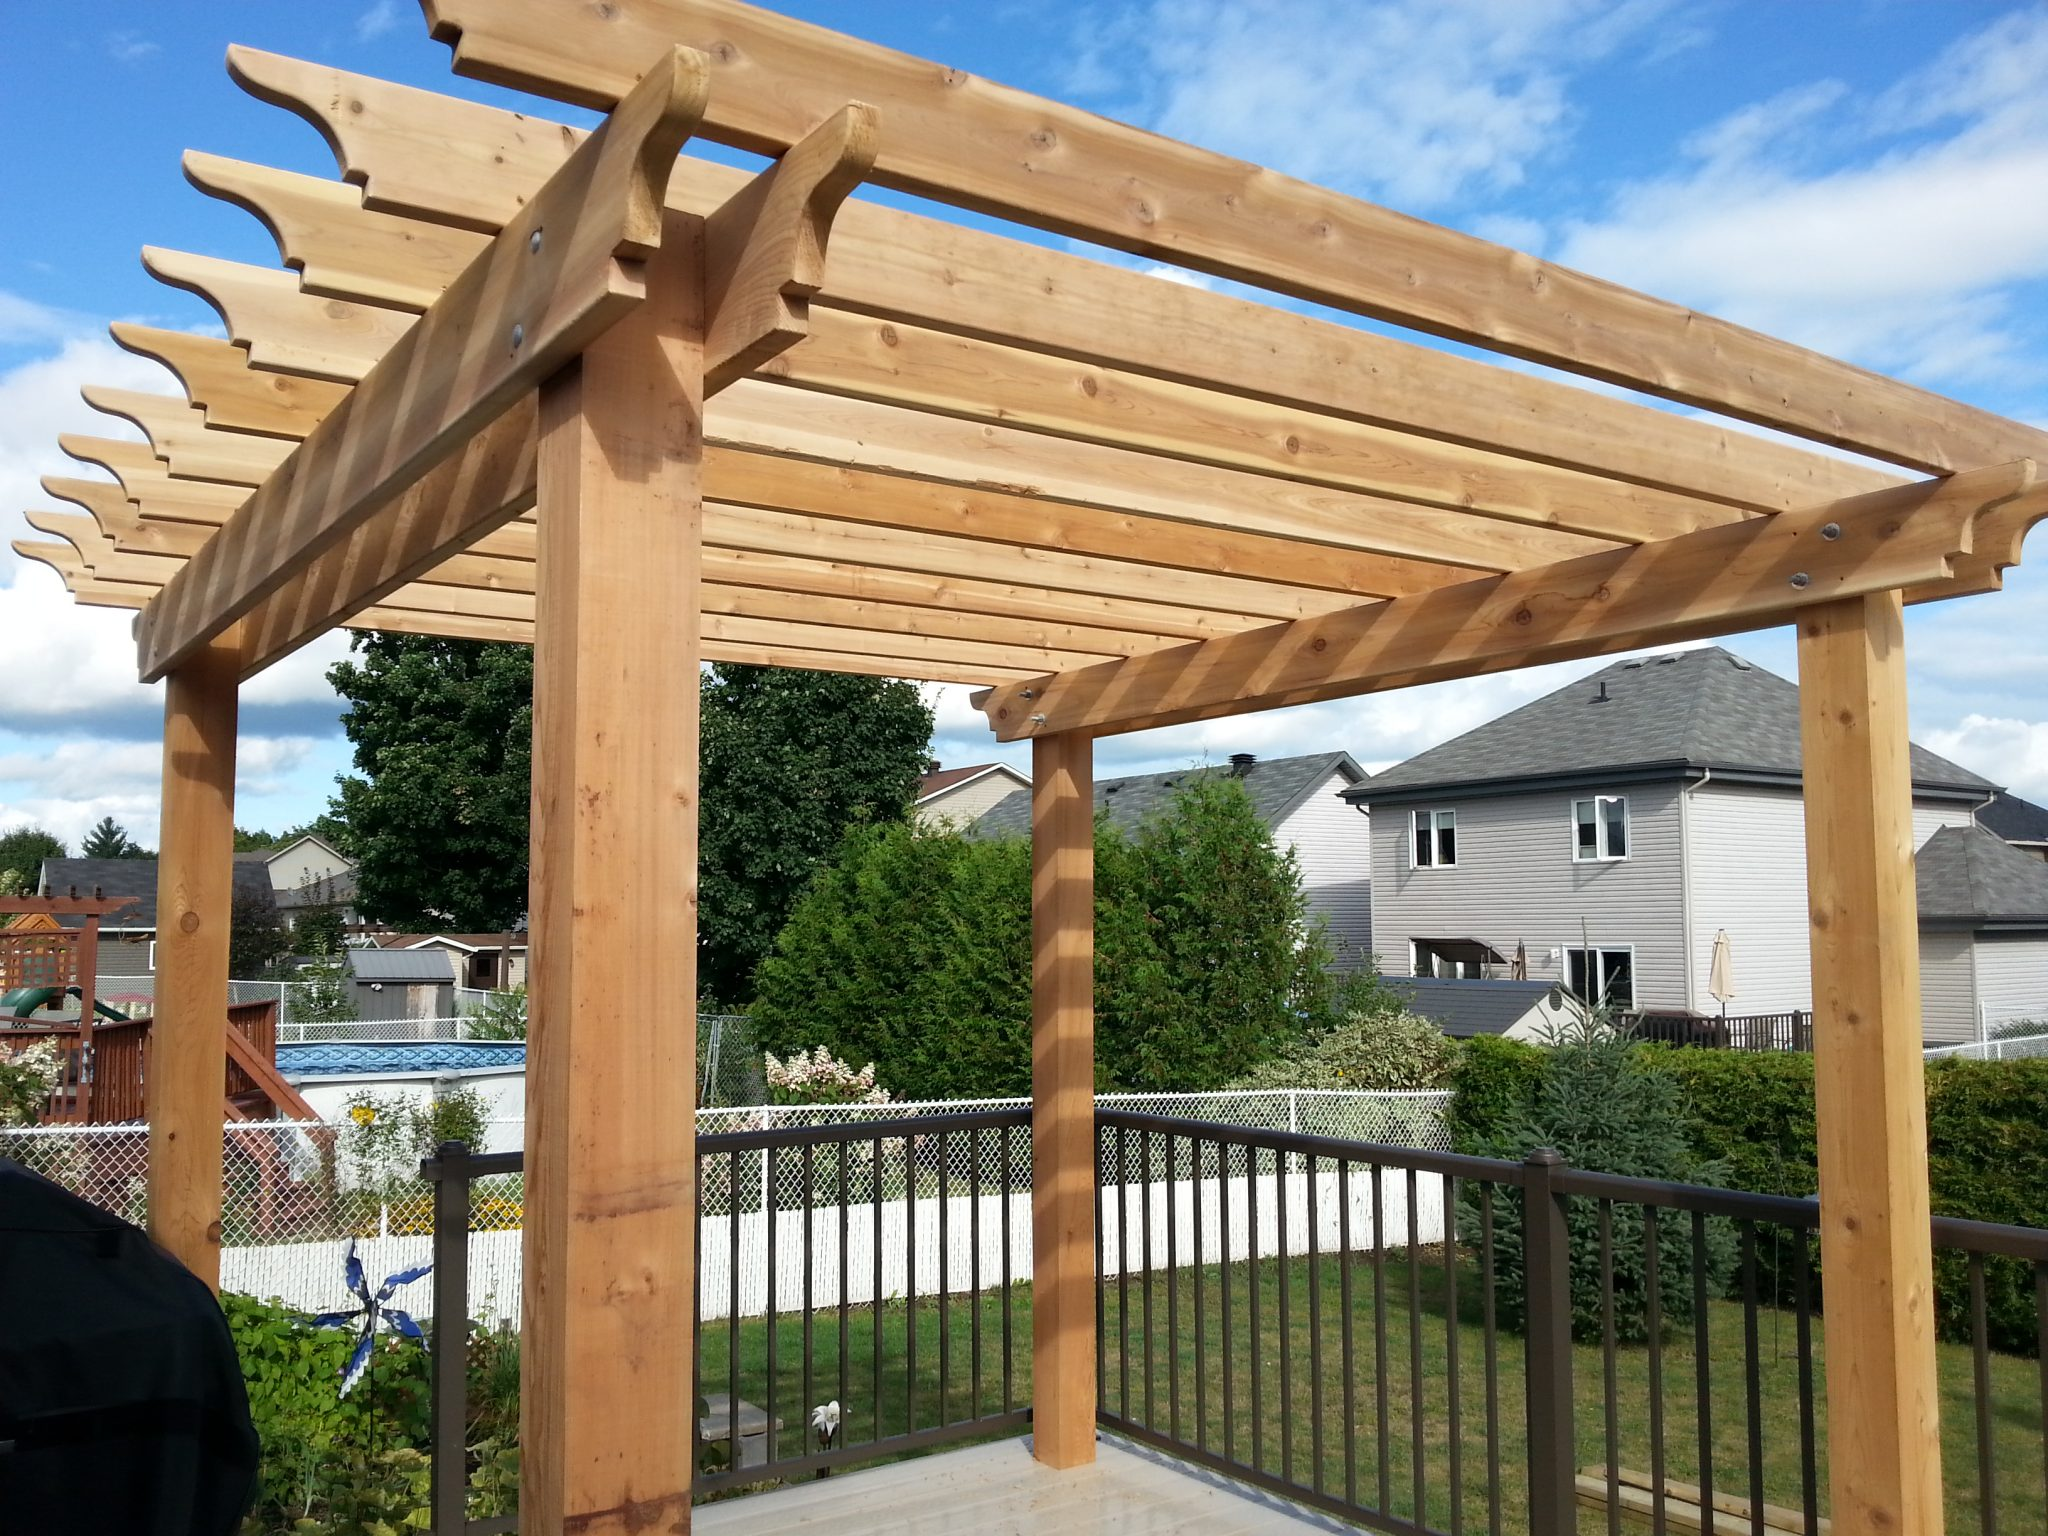 Apartment patio shade genius ways to turn your tiny outdoor space into a relaxing nook how to - Deco pergola ...